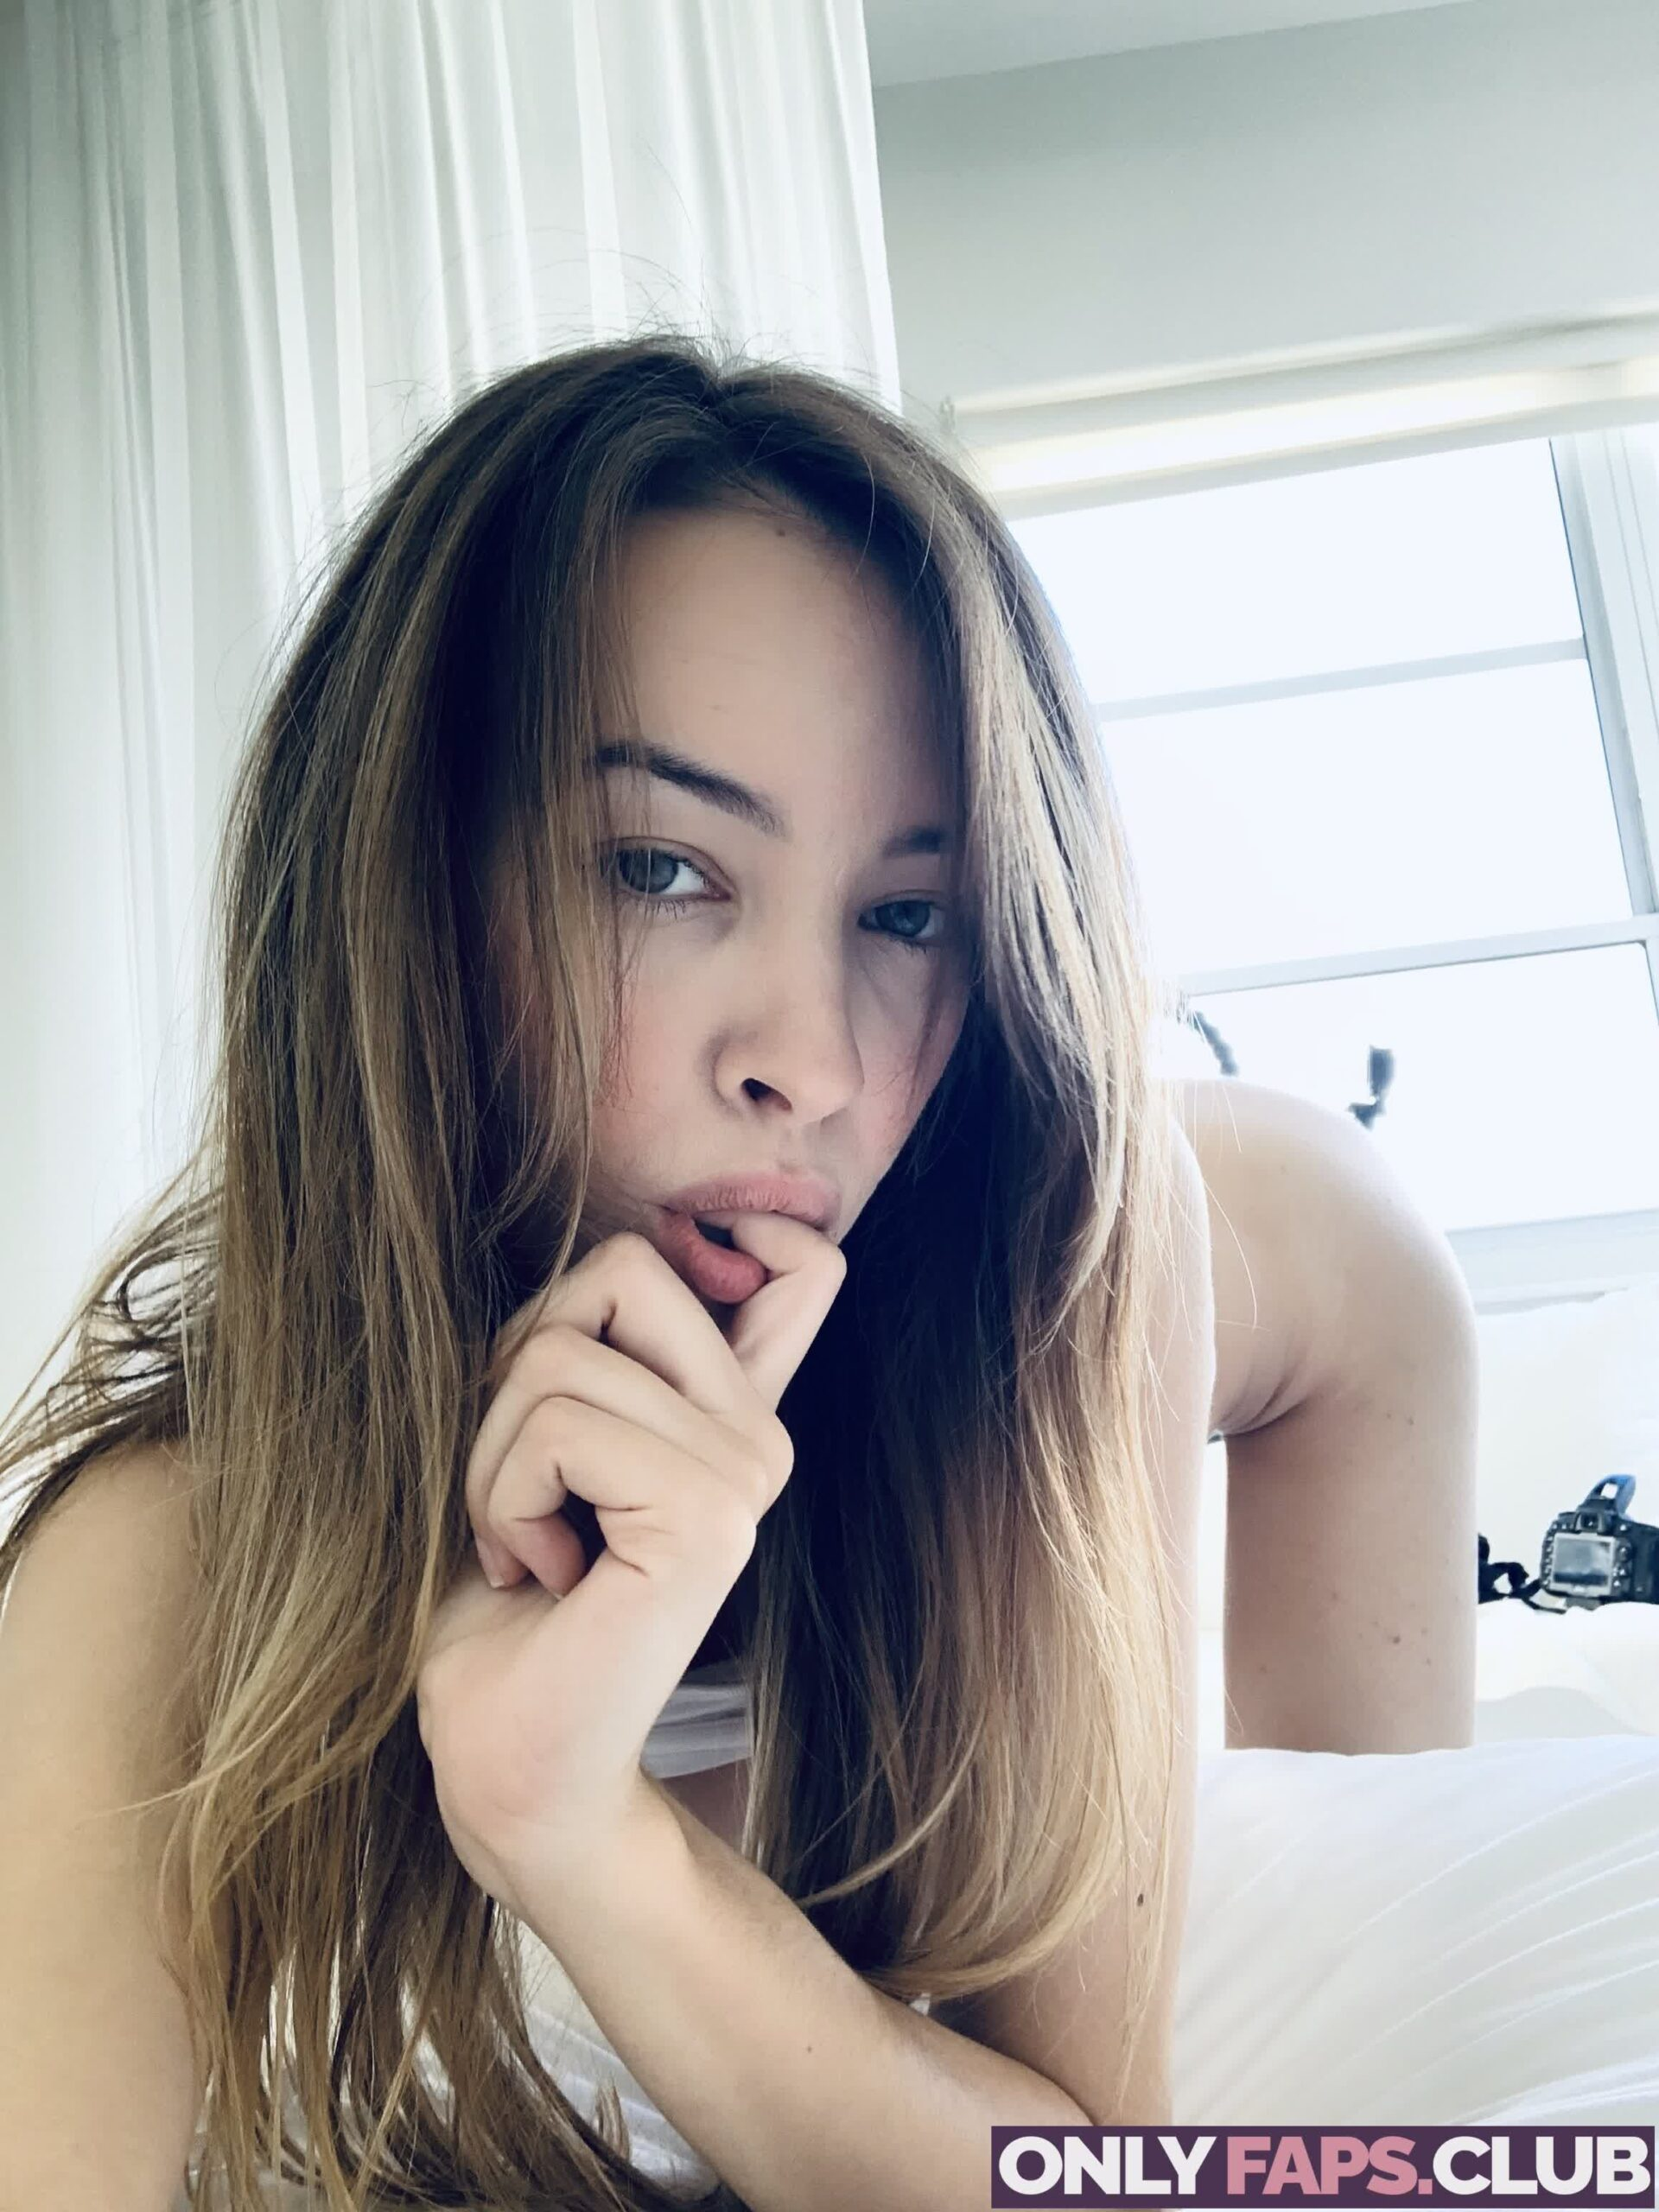 charitycrawford OnlyFans Leaks (99 Photos)